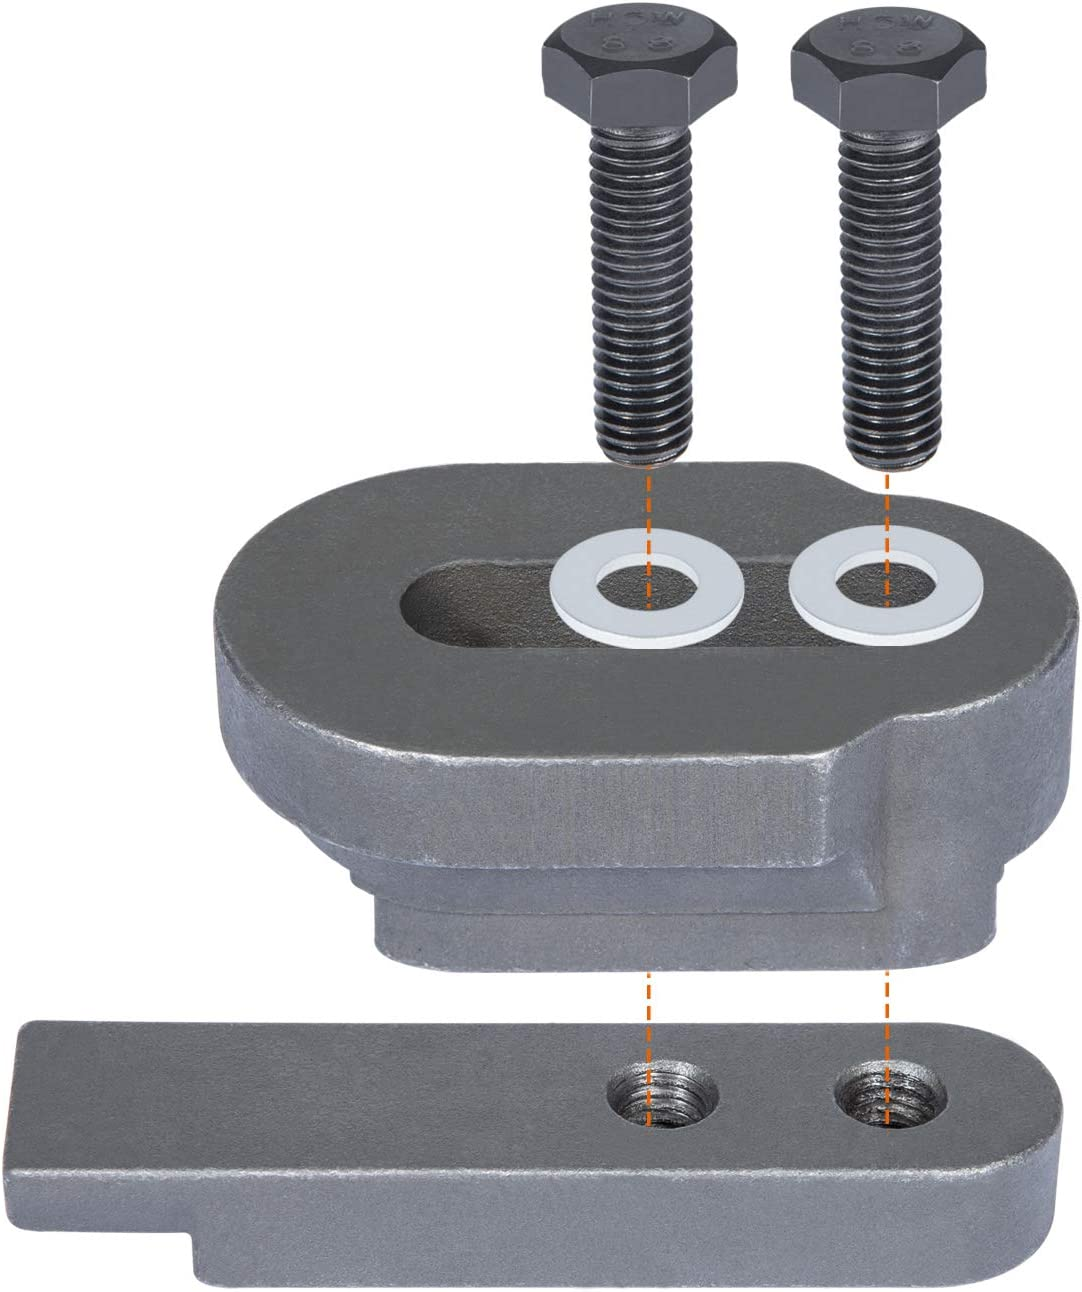 1PC Heavy Duty 2801 Flywheel Holder fits for BMW N20 N26 Engines Flex Plate Lock Tool Great for Replacing The Timing Chain